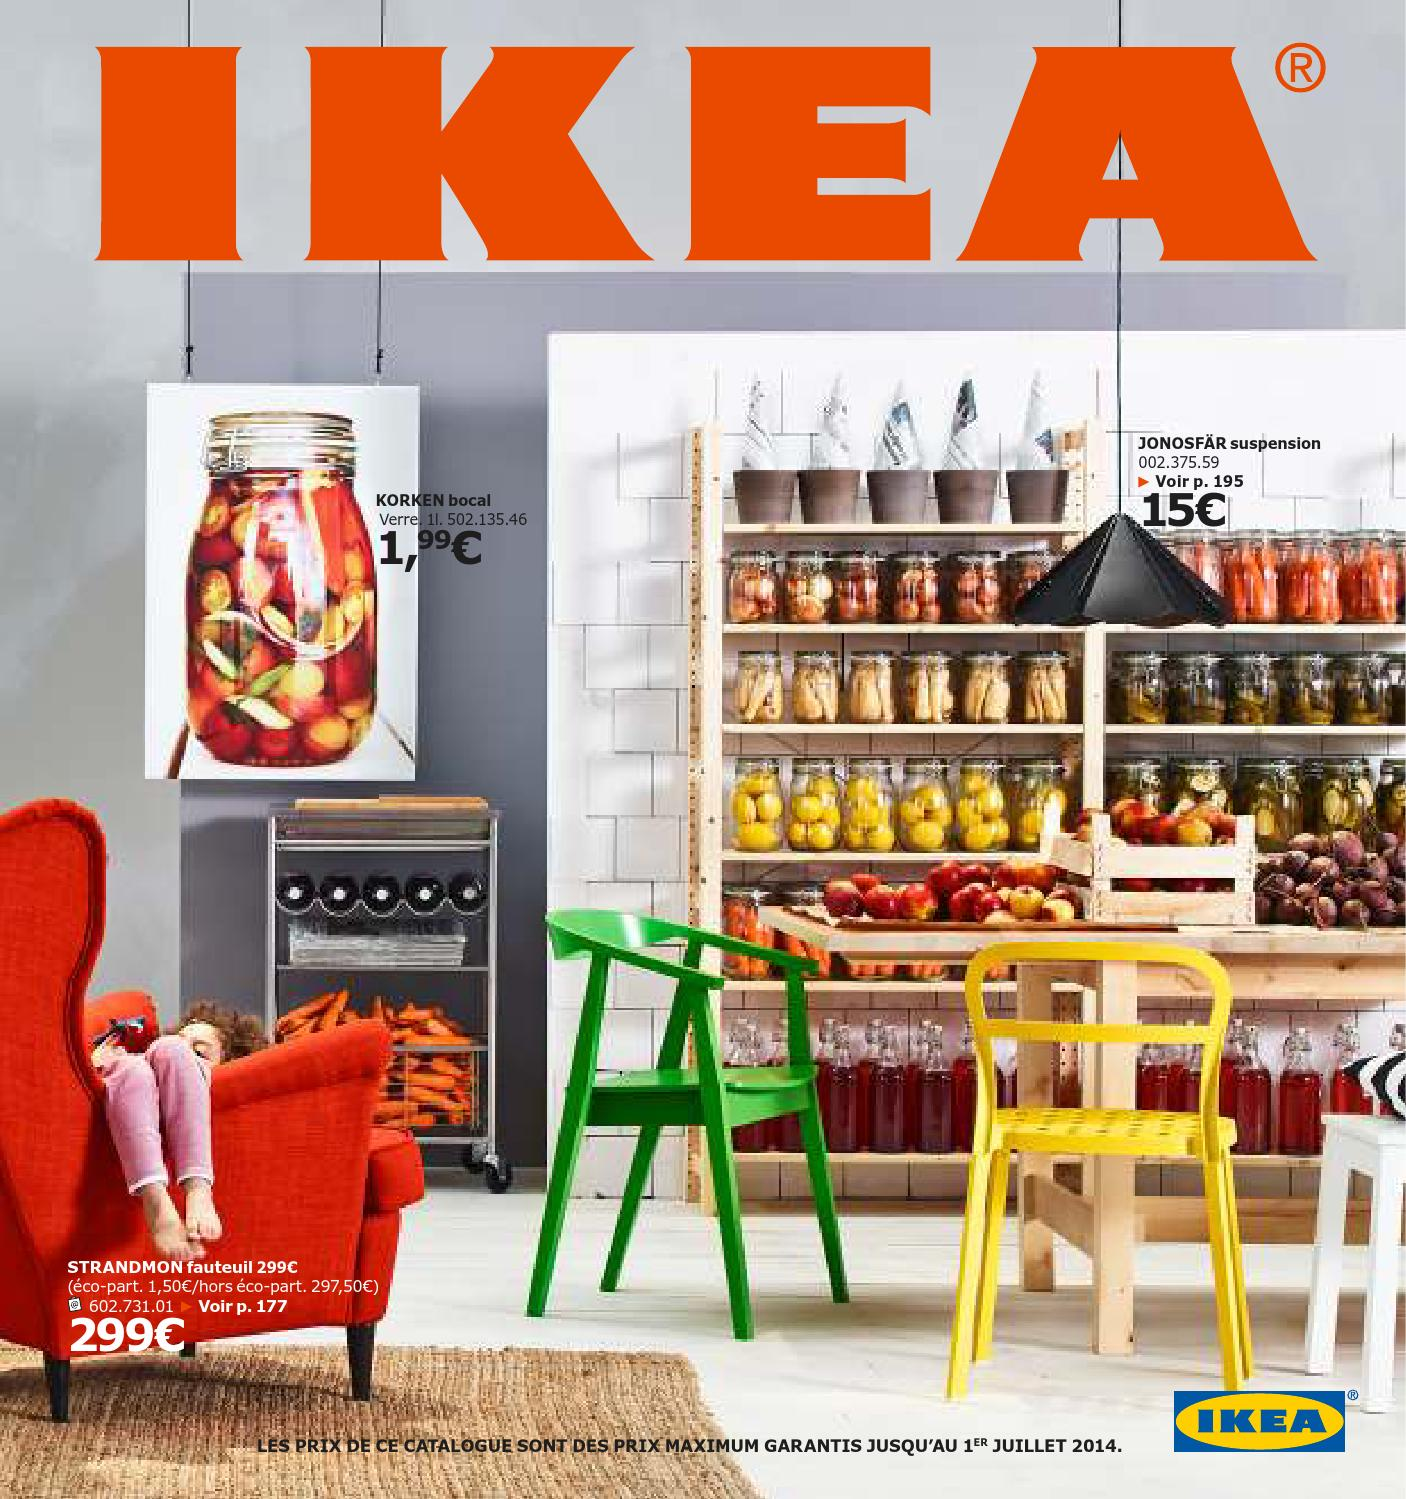 Catalogue Ikea Ikea France Catalogue 2013 2014 By Promocatalogues Issuu